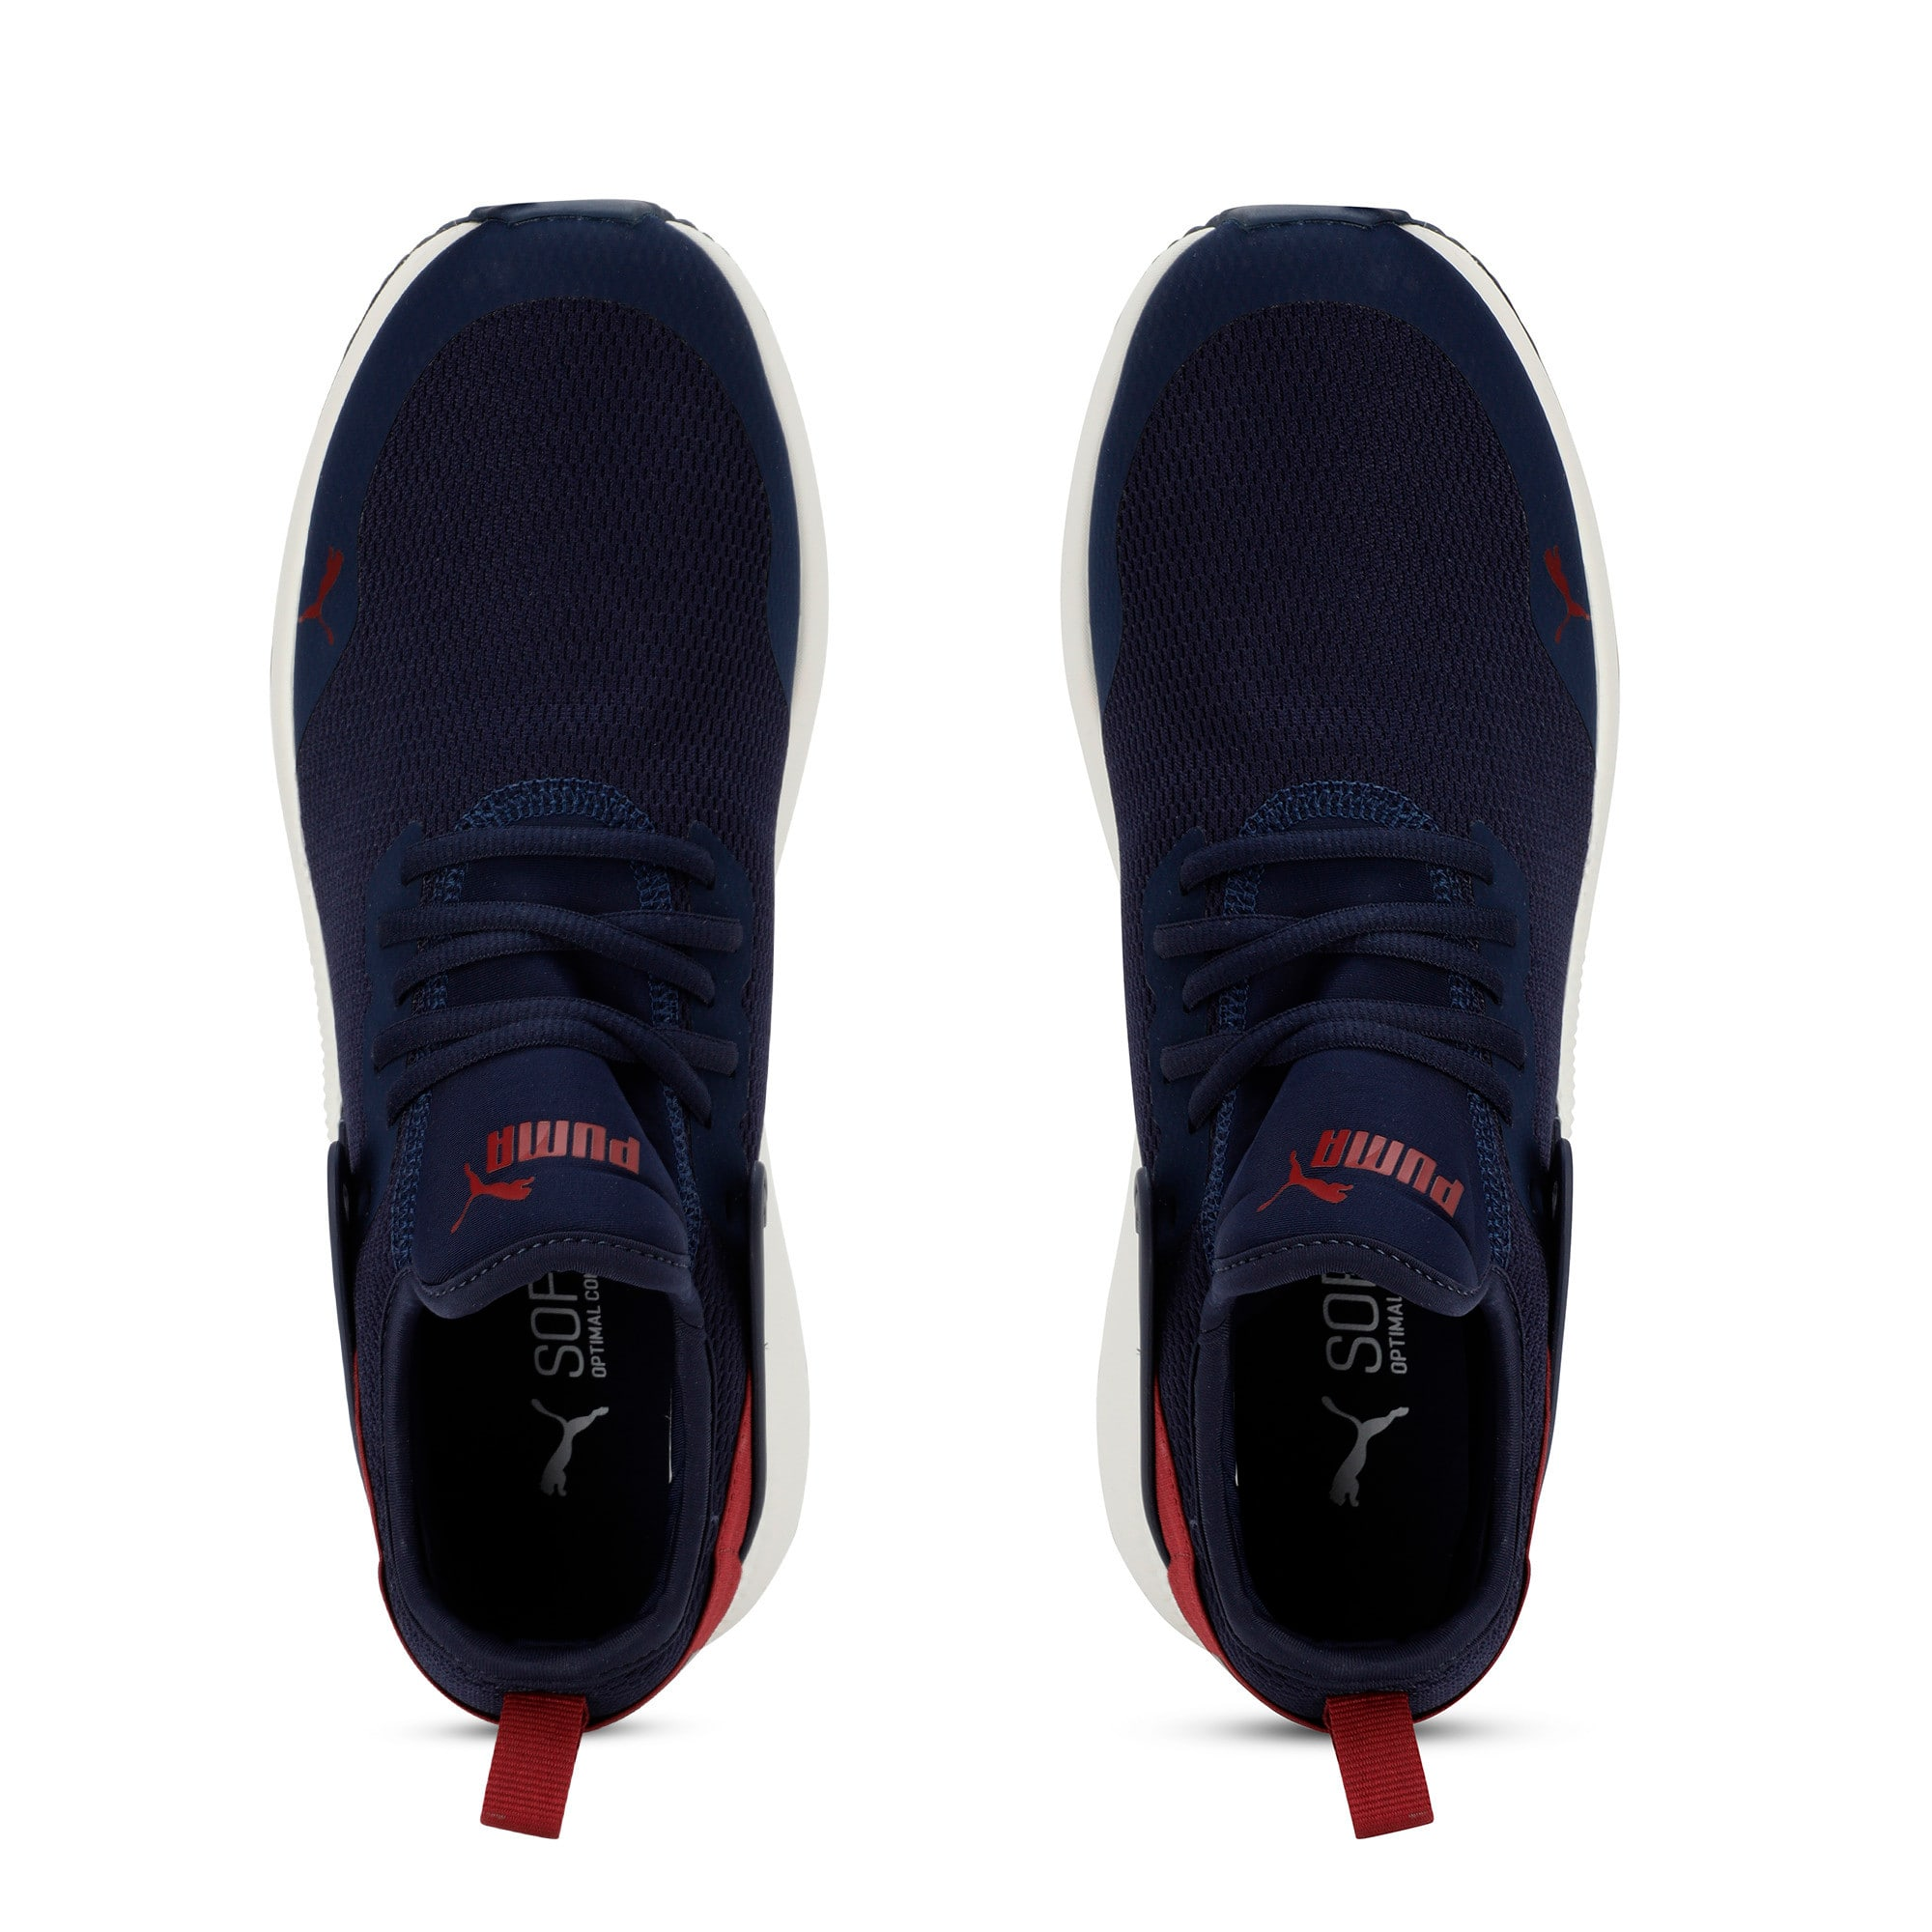 Thumbnail 8 of Pacer Next Cage Trainers, Peacoat-Rhubarb, medium-IND